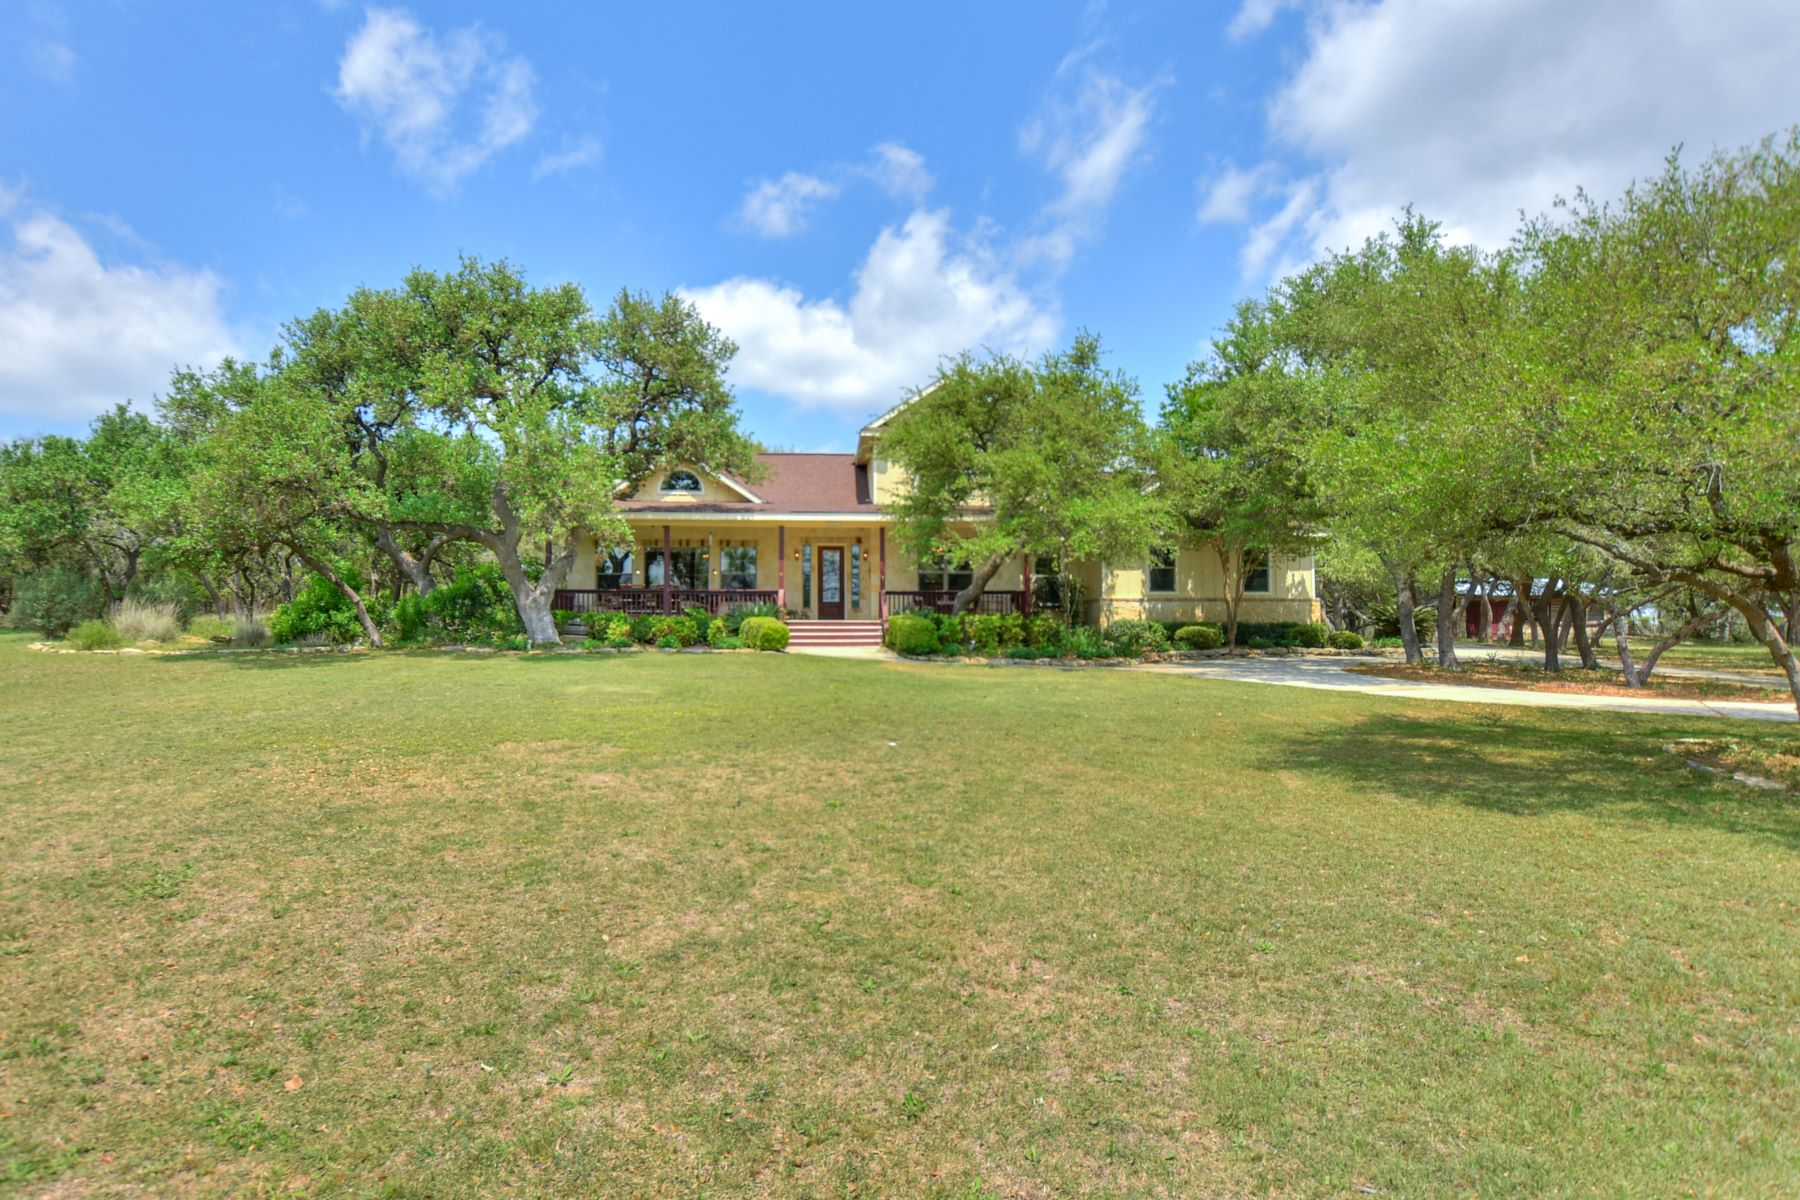 Single Family Home for Sale at Beautiful Home on Acreage in the Hill Country 6 Comanche Trail Boerne, Texas 78006 United States